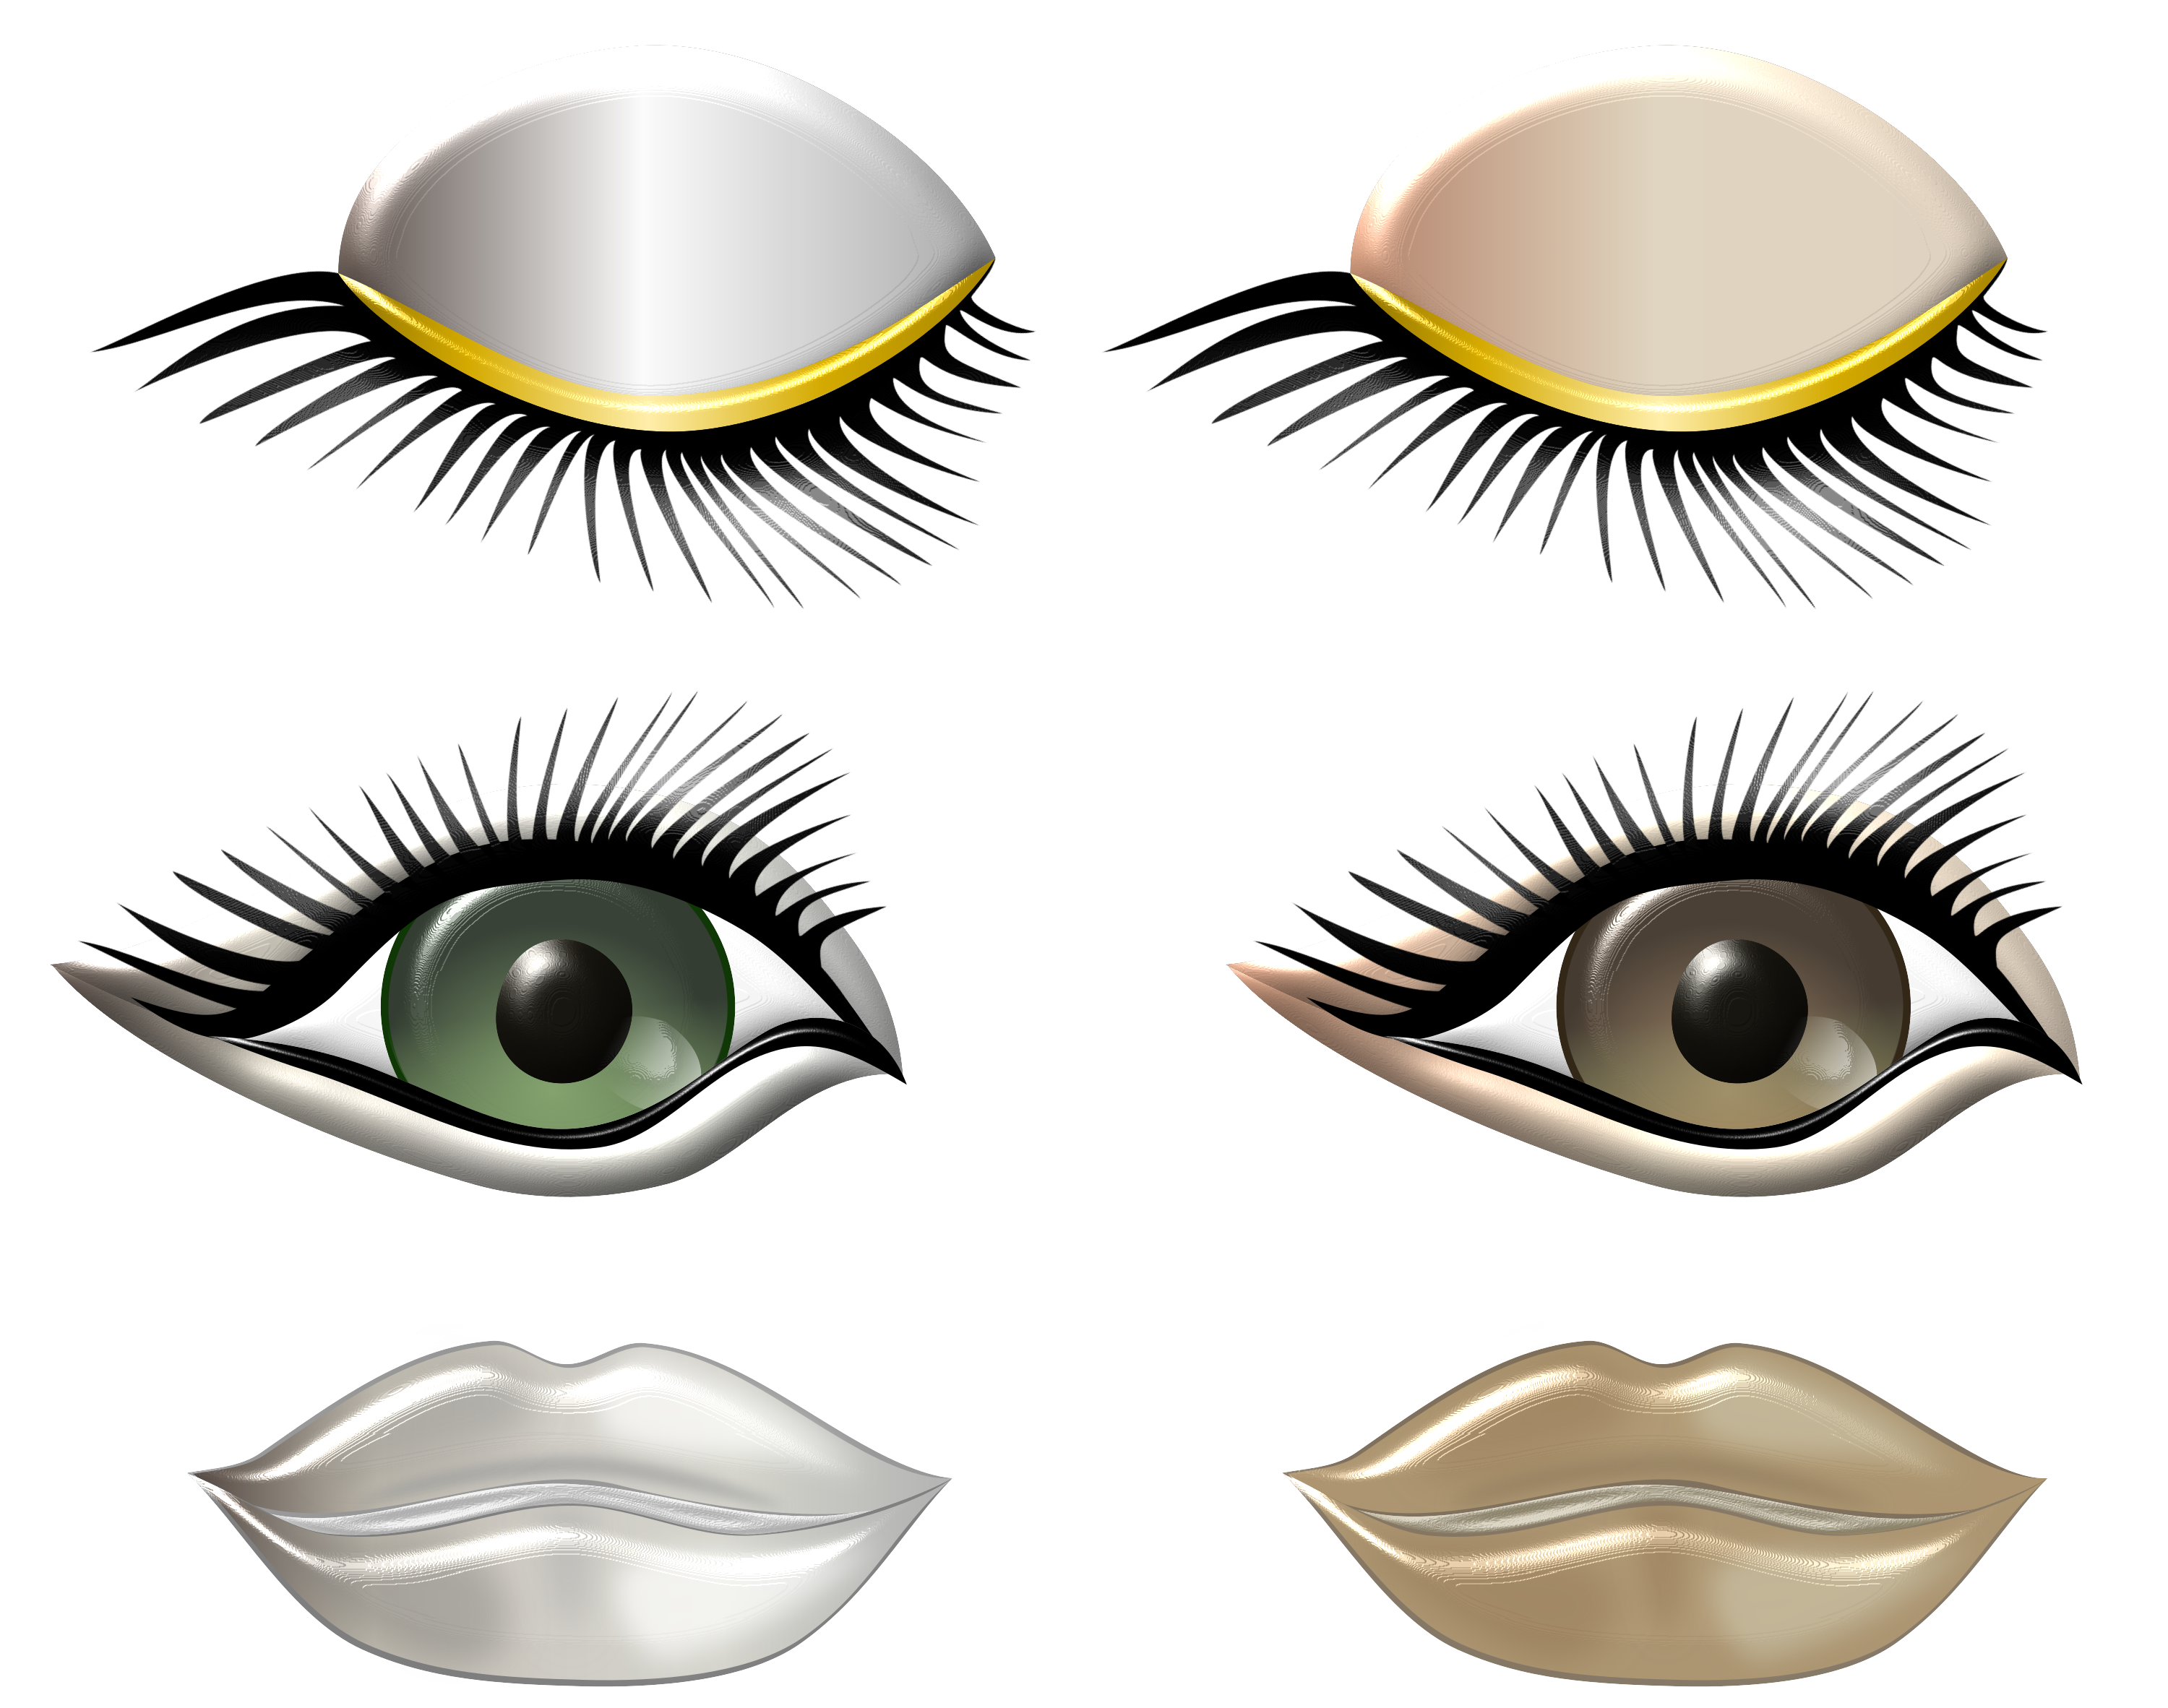 Specials favourites by kymscave. Eyelashes clipart digital art